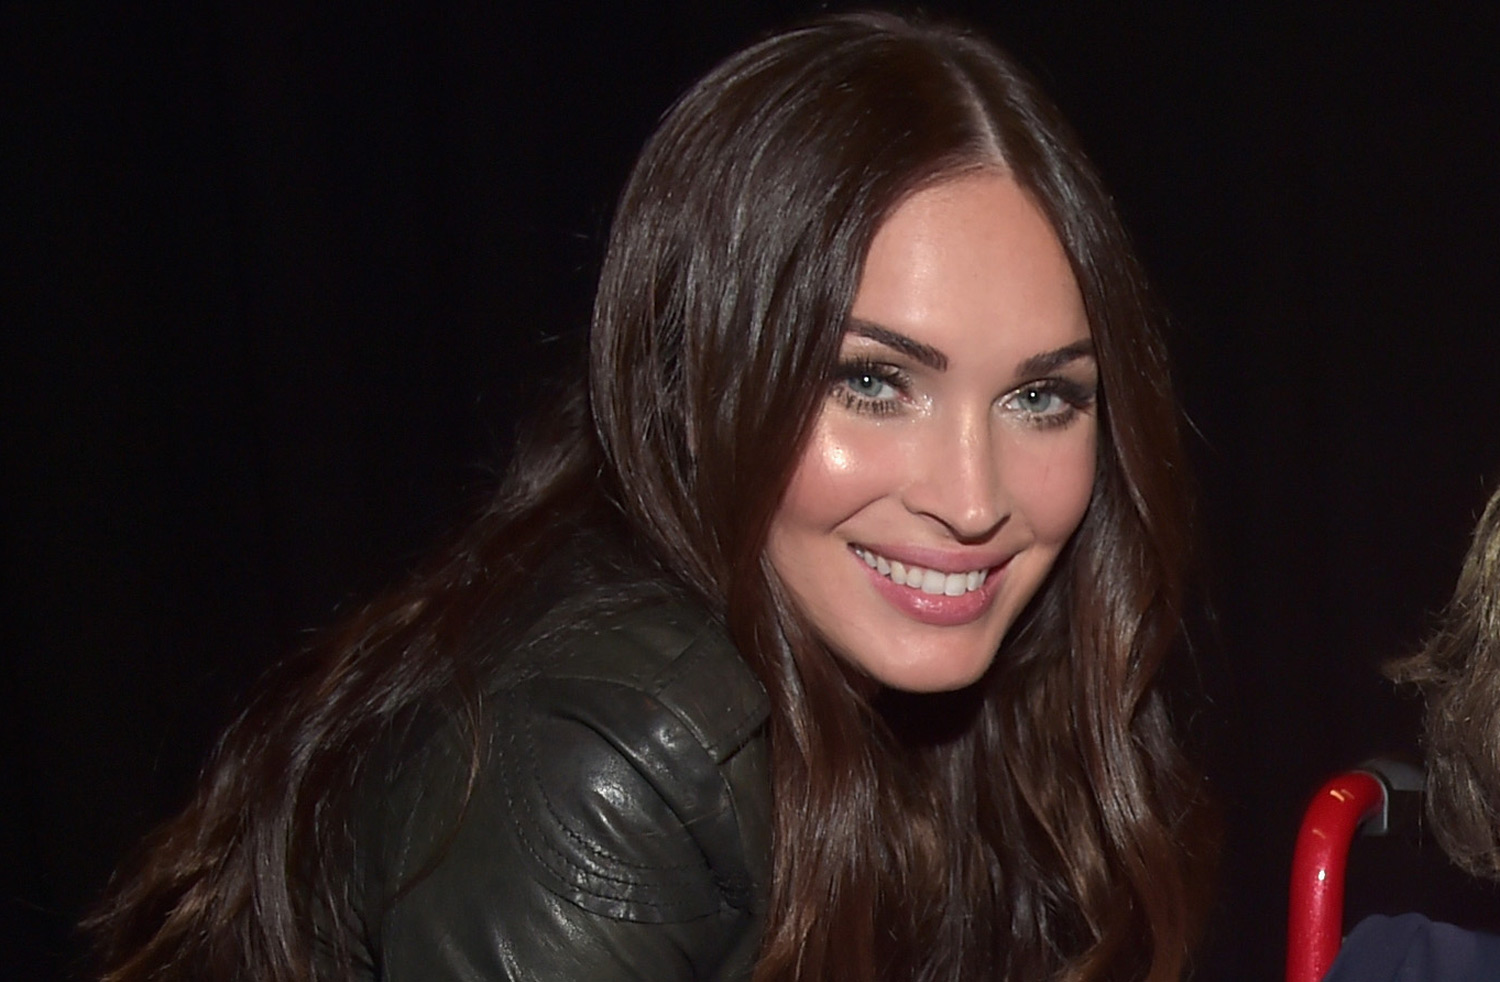 Megan Fox news - NewsLocker